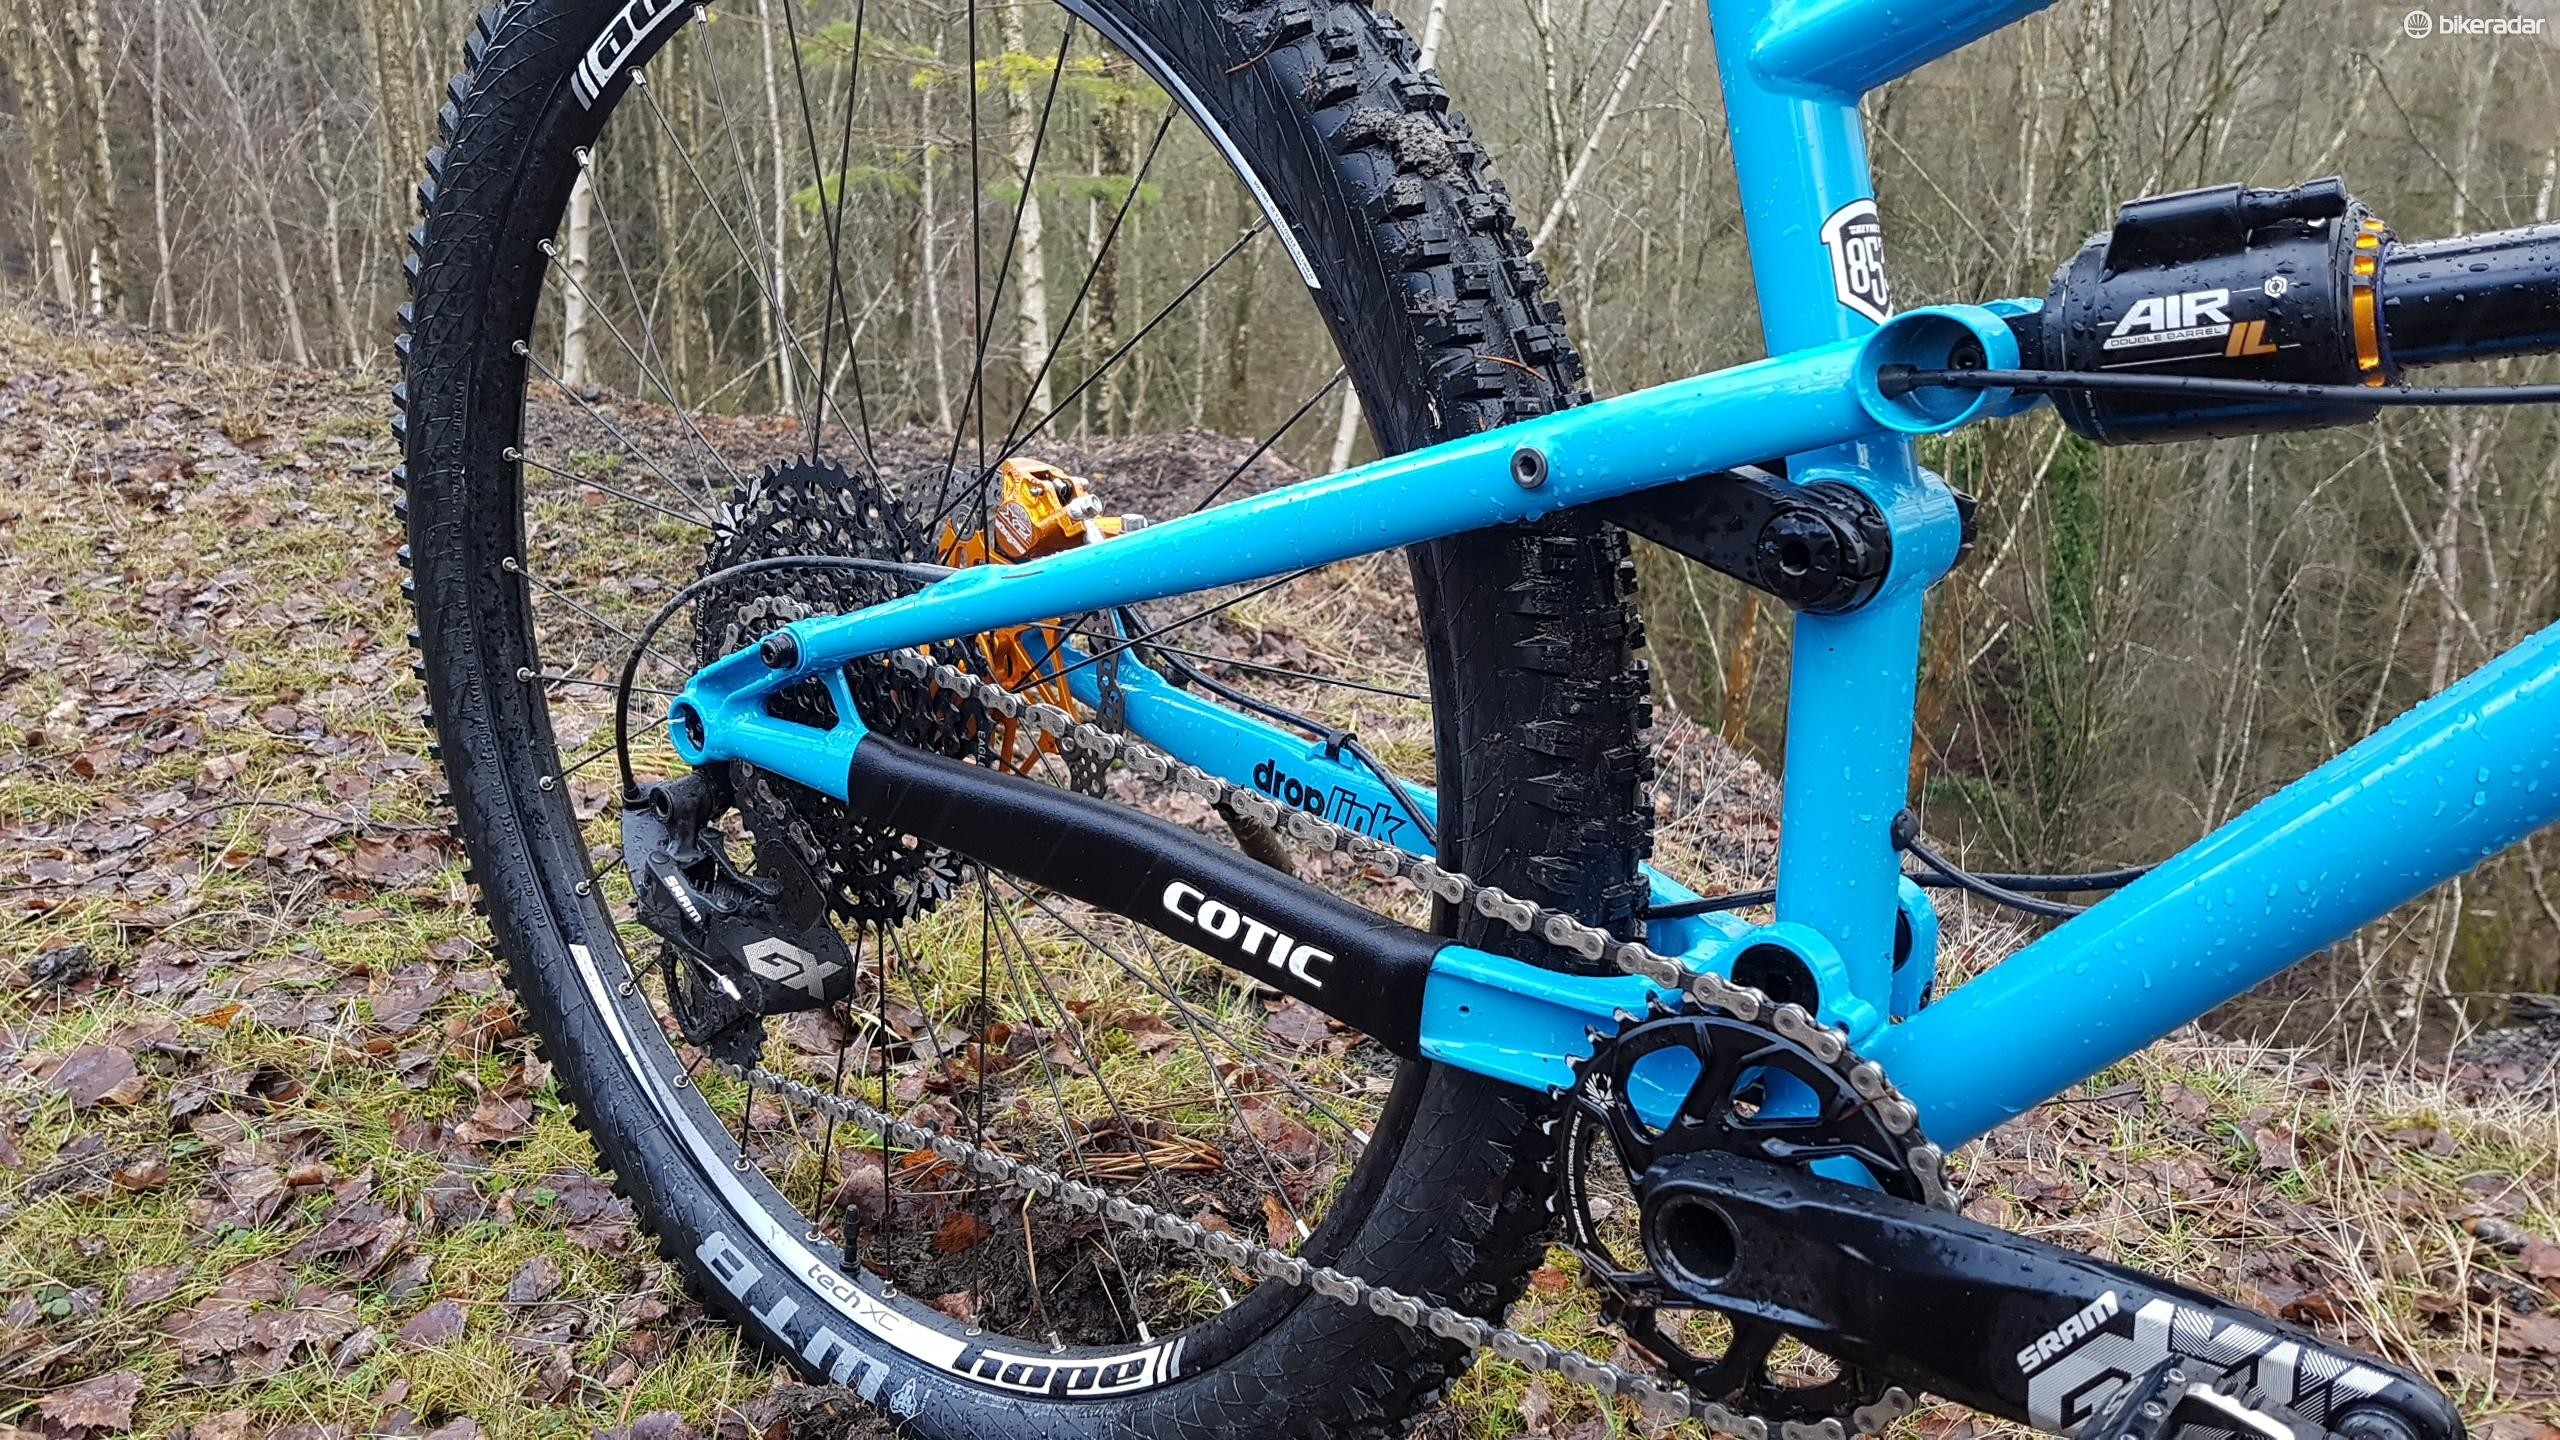 Cotic's long-running DropLink suspension is a four-bar system